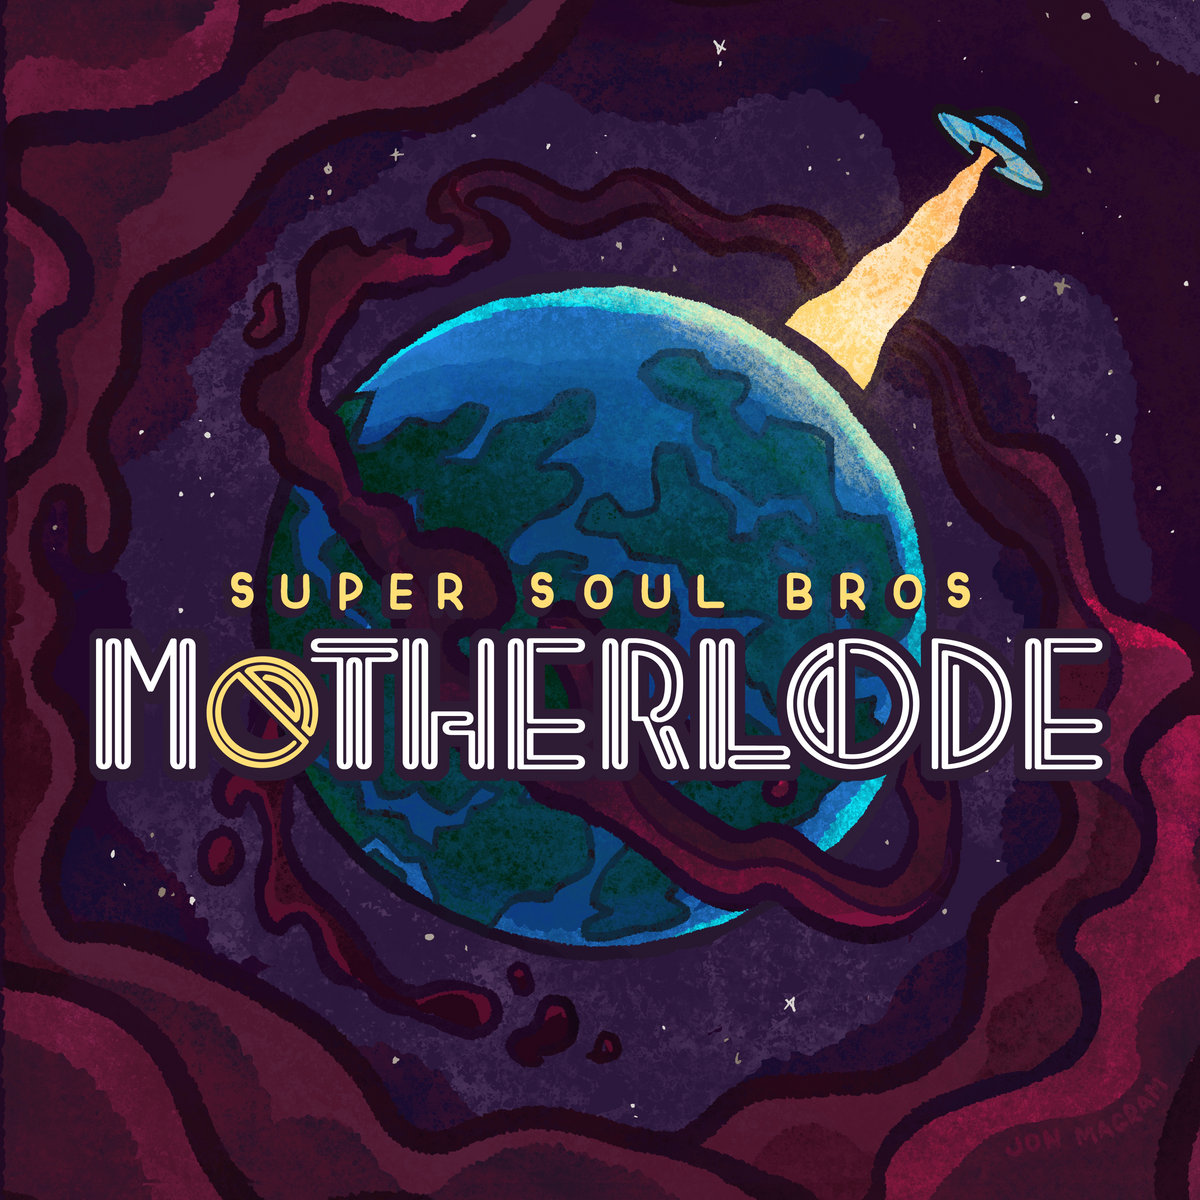 Motherlode | Super Soul Bros